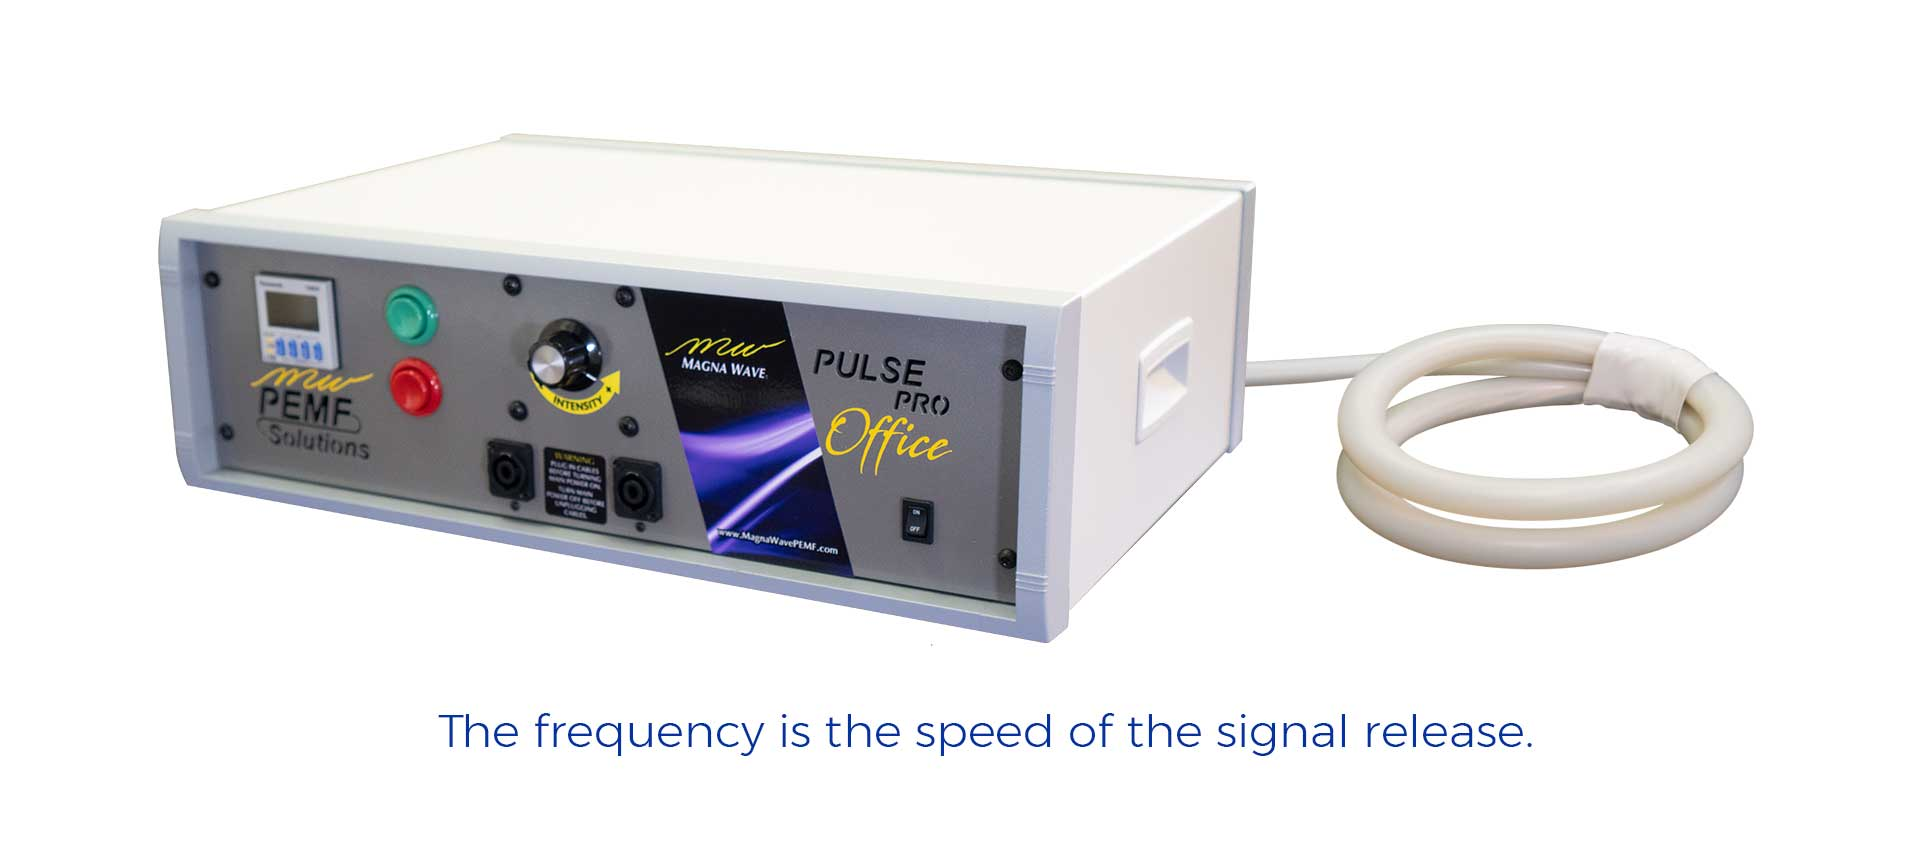 The frequency is the speed of the signal release.